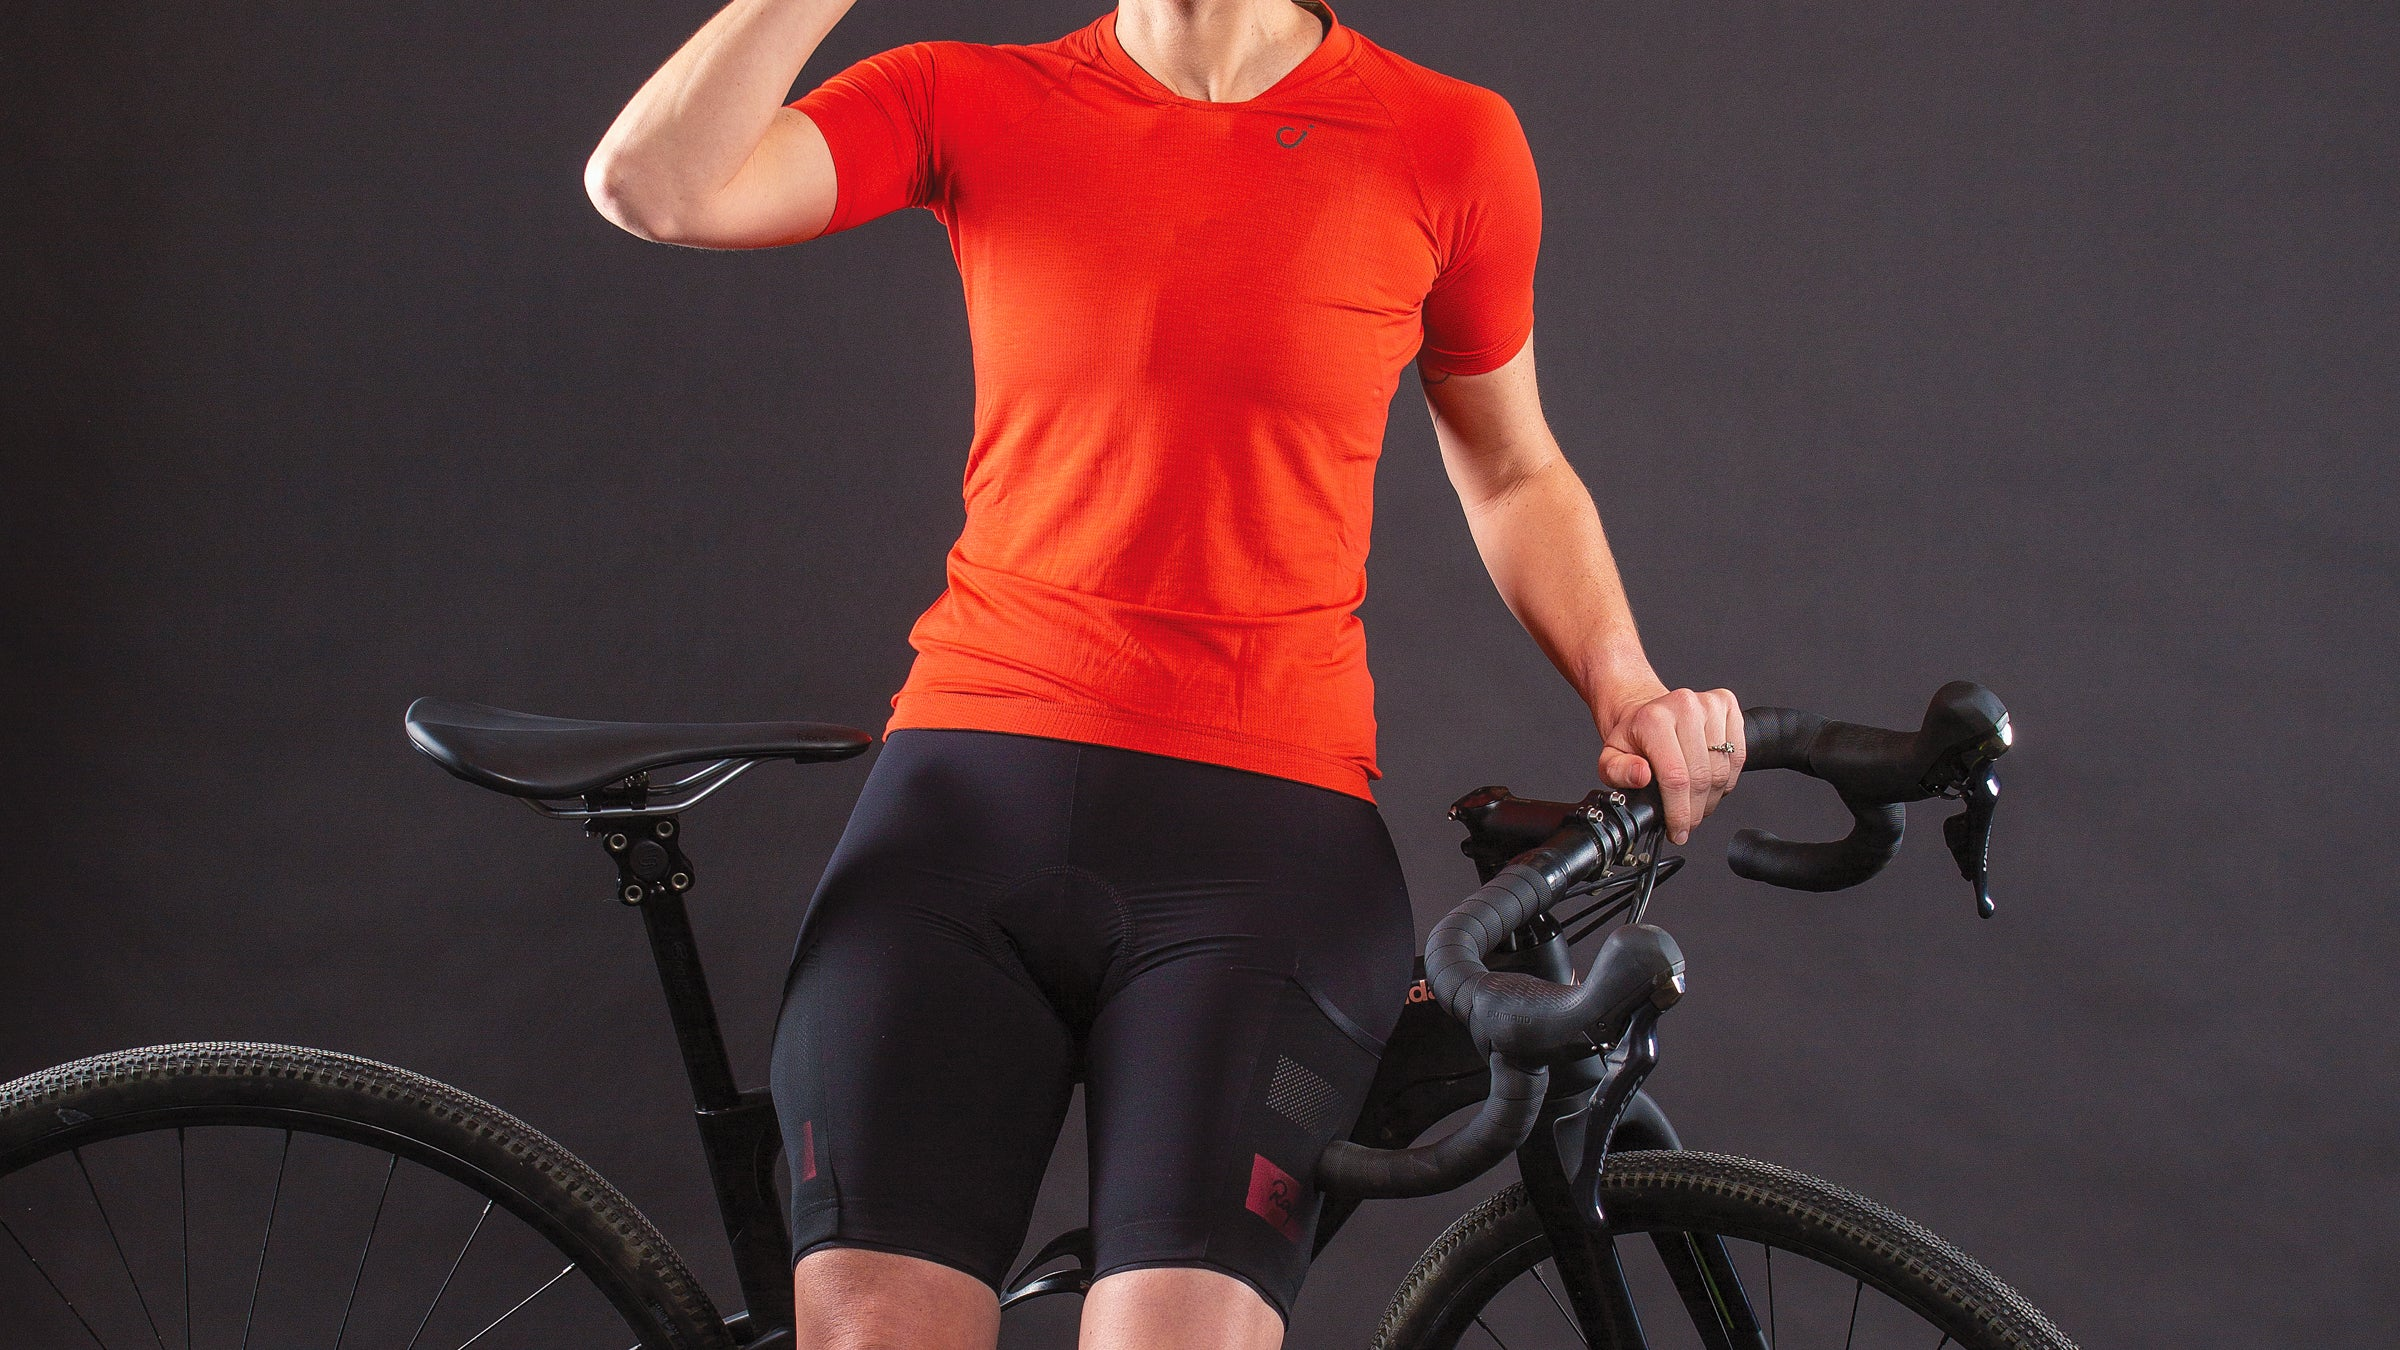 Detail of woman leaning against gravel bike and wearing cycling jersey and bike shorts